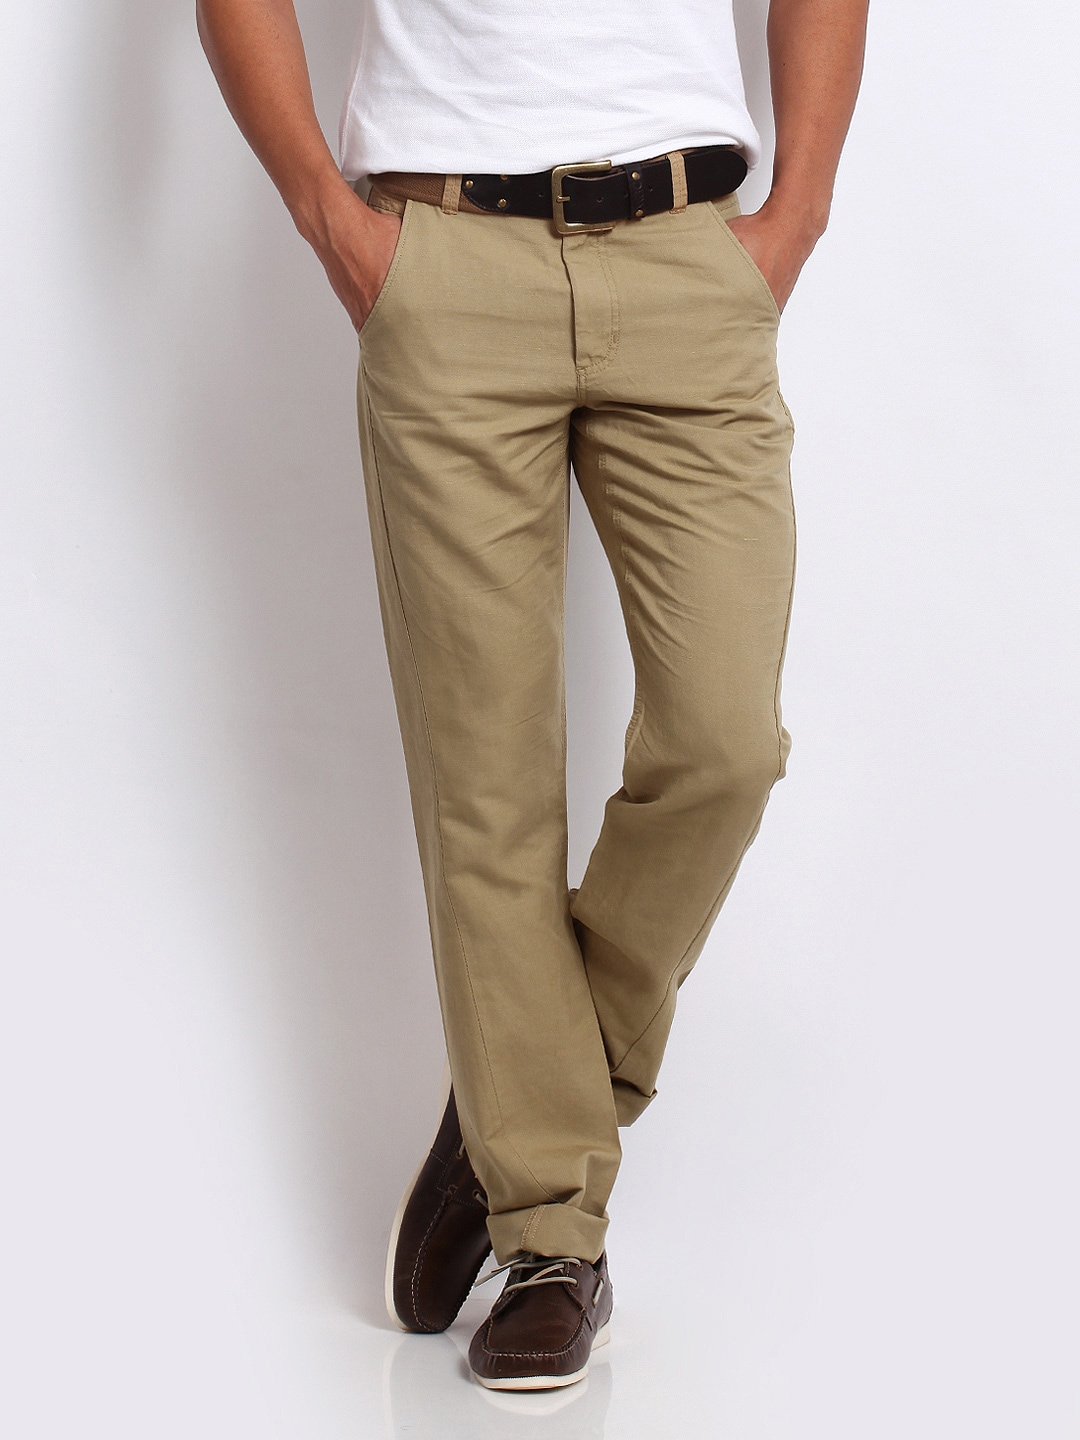 mens khaki slim fit pants - Pi Pants